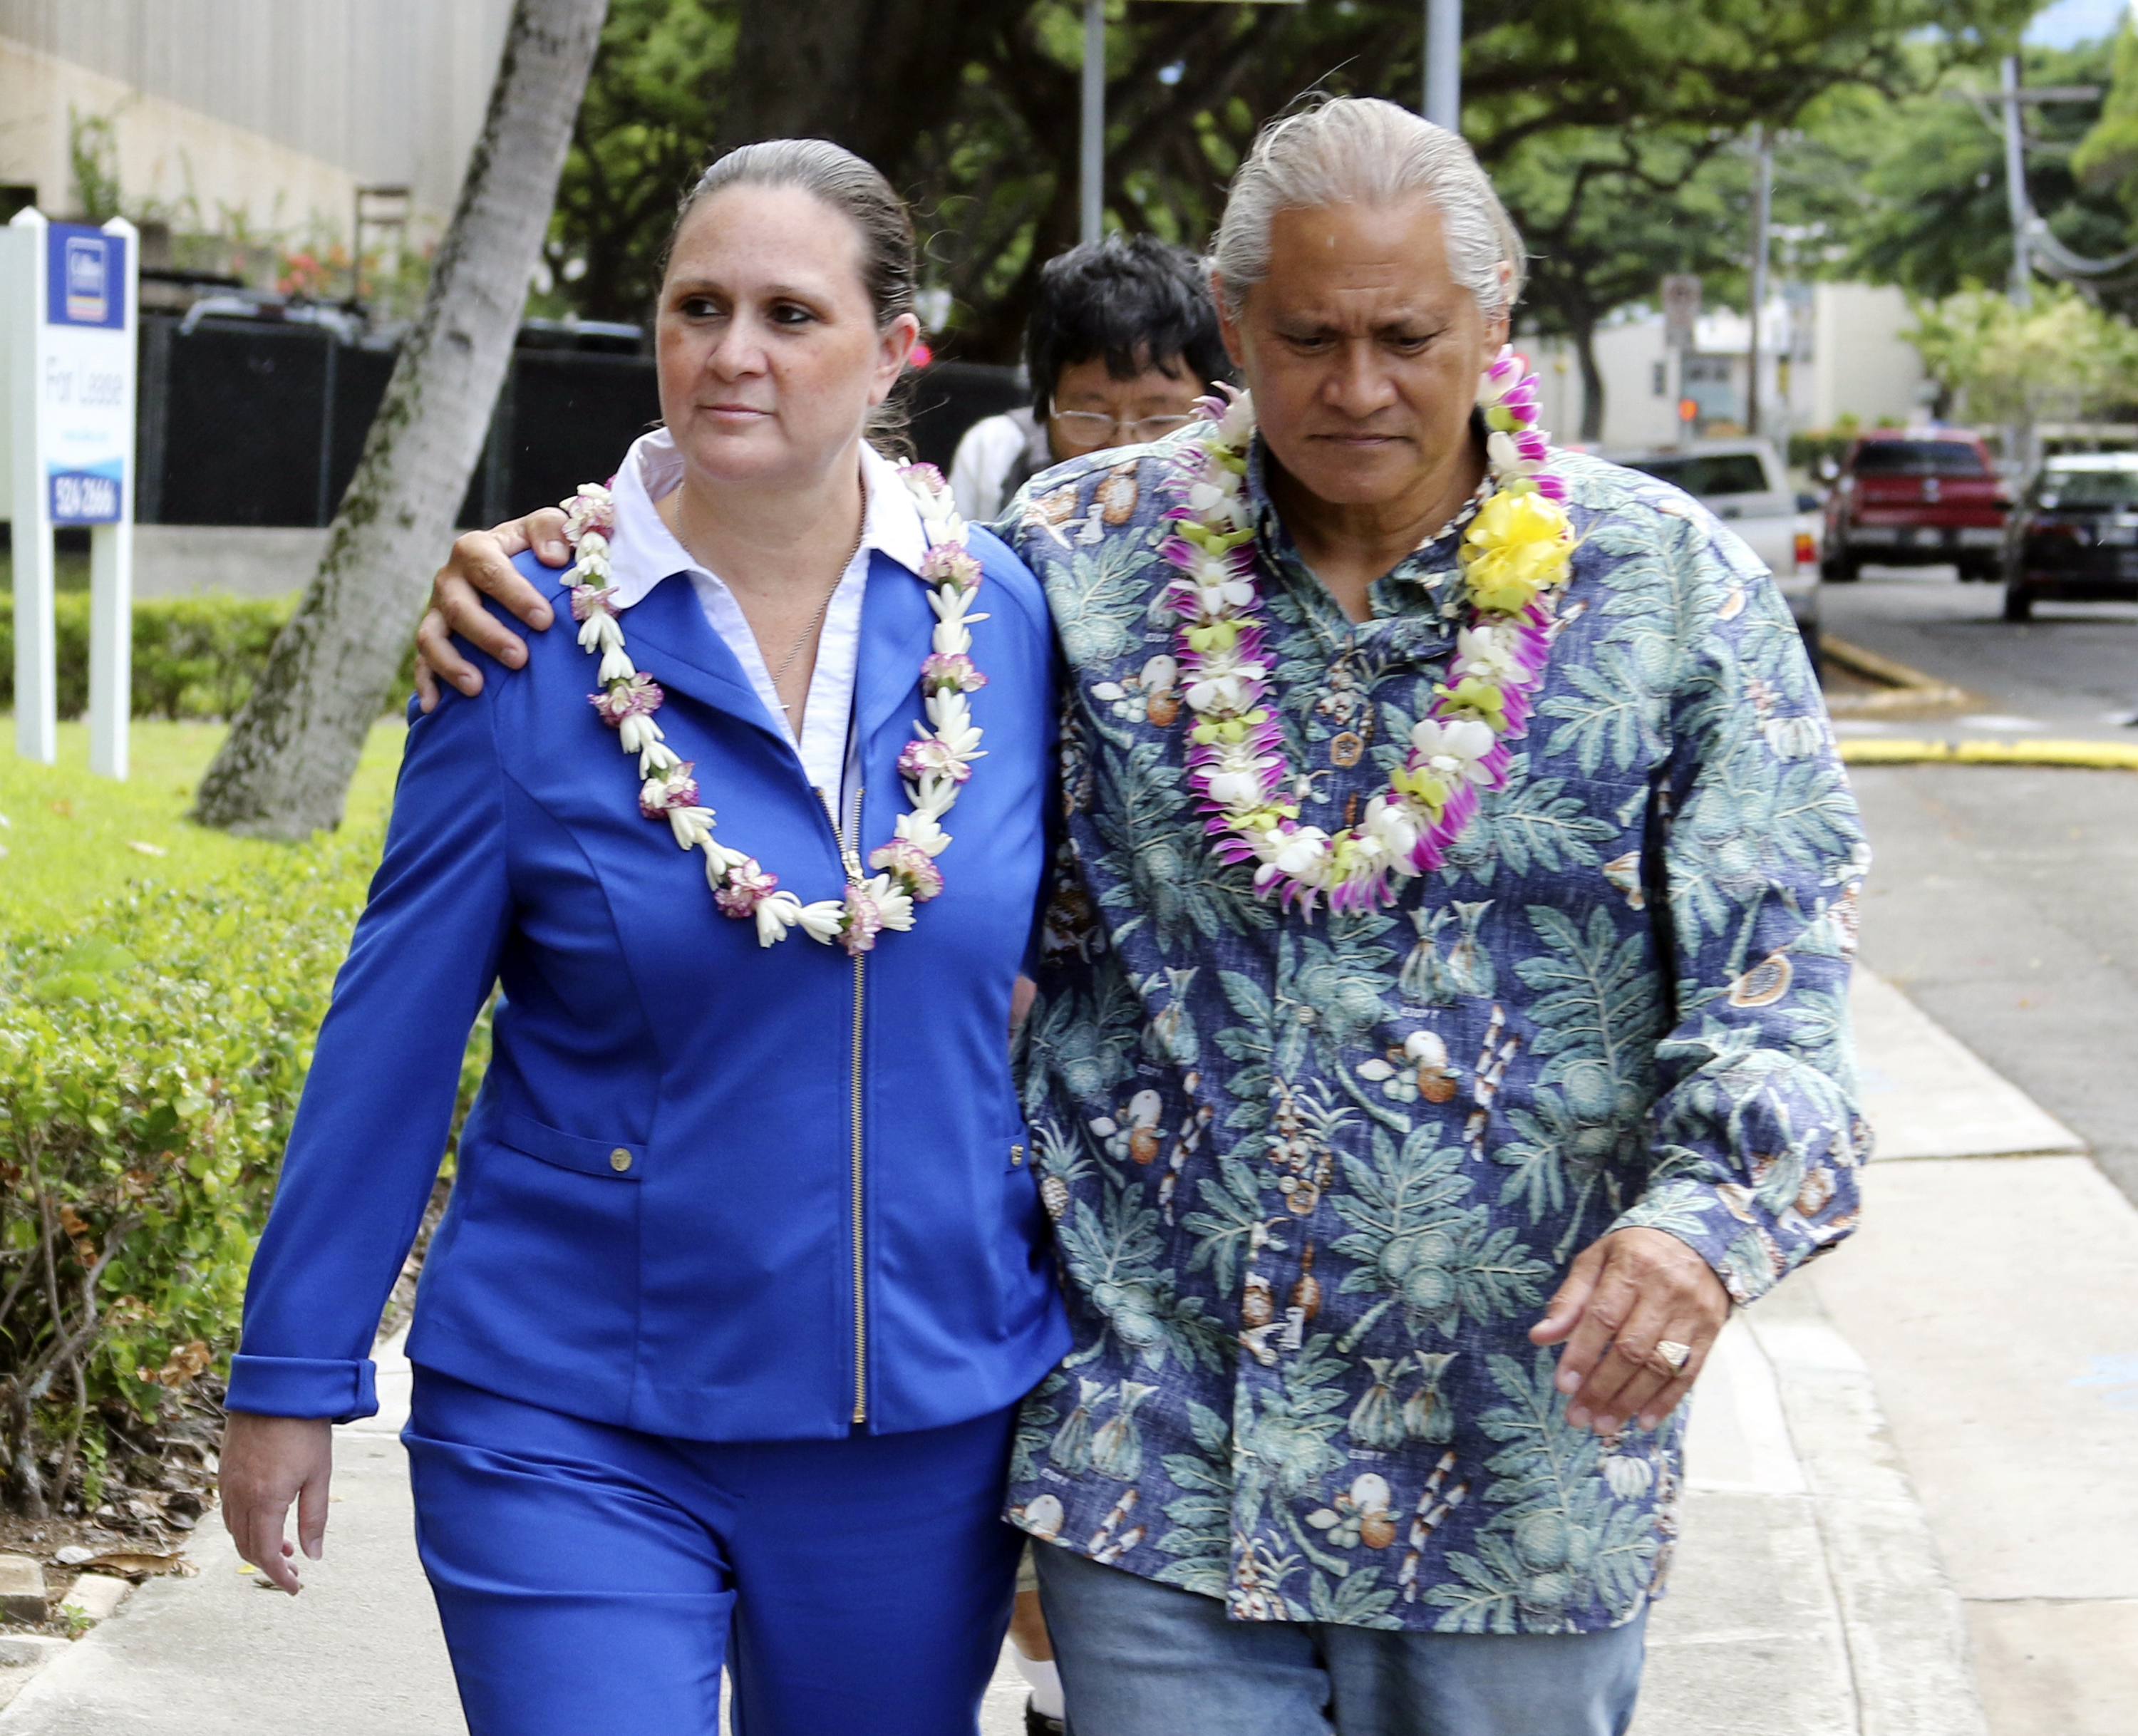 FILE - In this Oct. 20, 2017 file photo, former Honolulu Police Chief Louis Kealoha and his wife Katherine Keahola leave federal court in Honolulu. The city of Honolulu's chief legal officer has received a target letter linked to an ongoing federal corruption investigation. Mayor Kirk Caldwell says Corporation Counsel Donna Leong is taking a paid leave of absence, effective Monday, Jan. 14, 2019. (AP Photo/Caleb Jones, File)